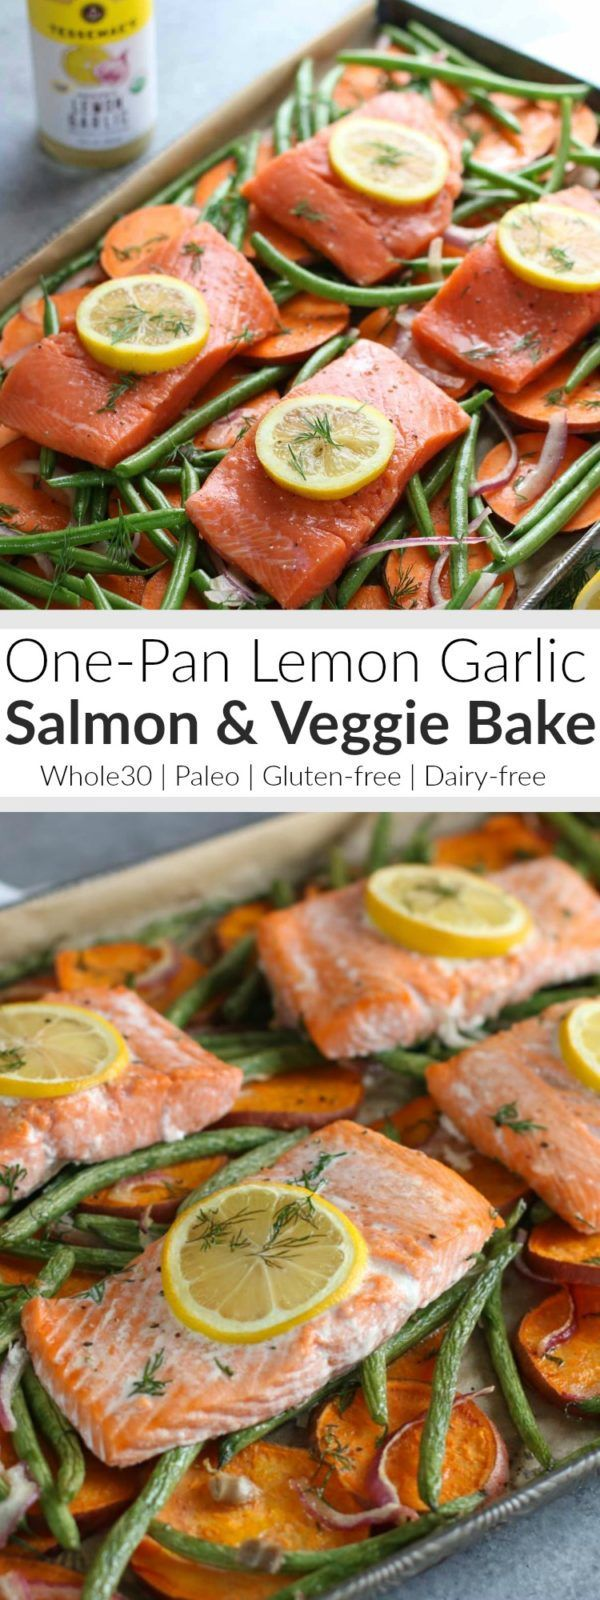 One Pan Salmon & Veggie Bake  Make Life Easier This Week With Our One